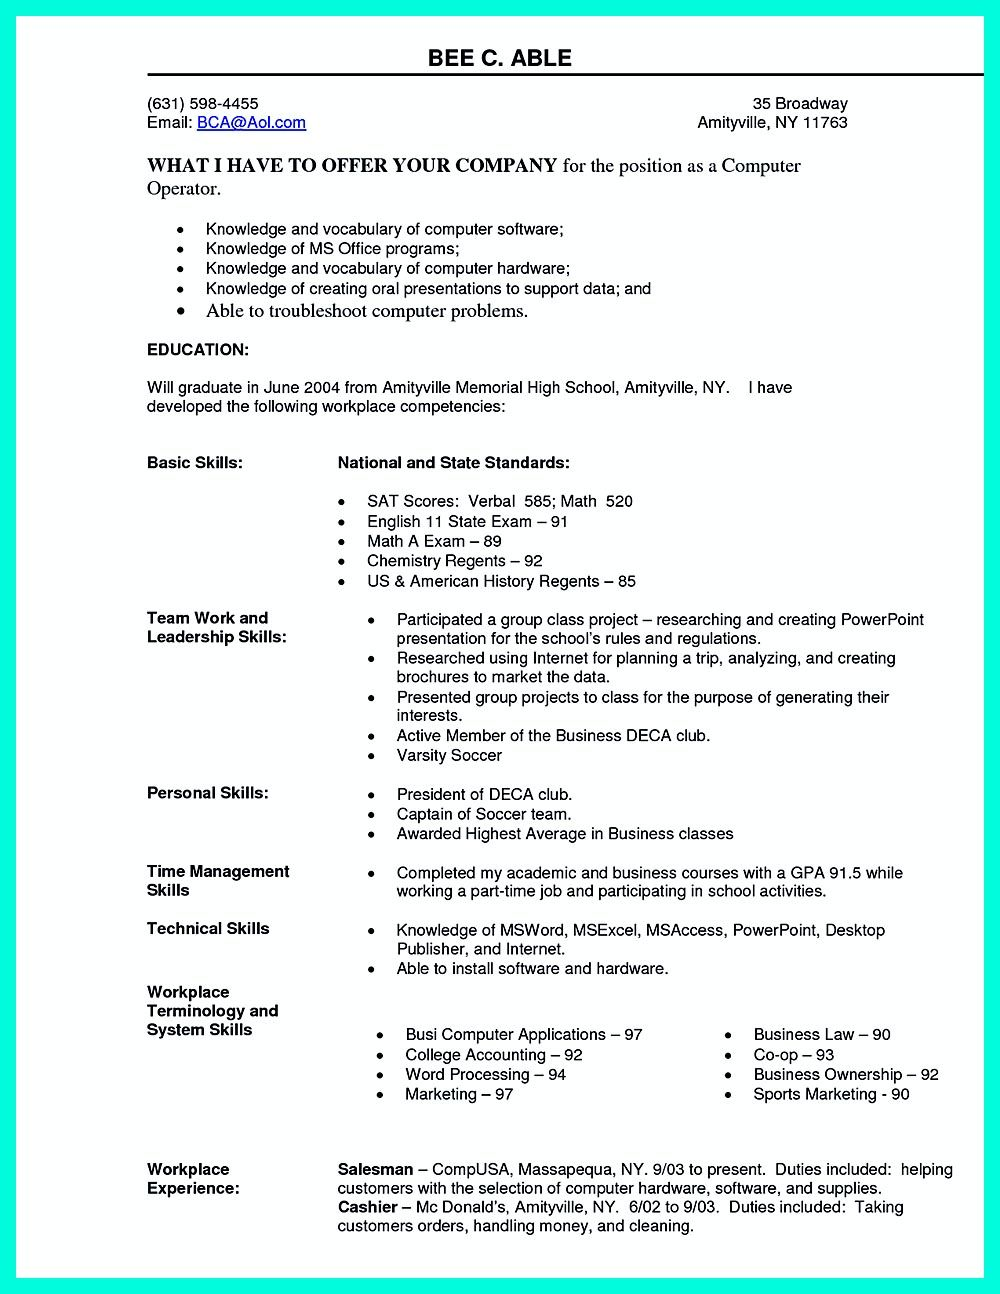 What You Will Include In The Computer Science Resume Depends On The Training As Well As The Previous Experi Resume Skills Section Resume Skills Resume Examples